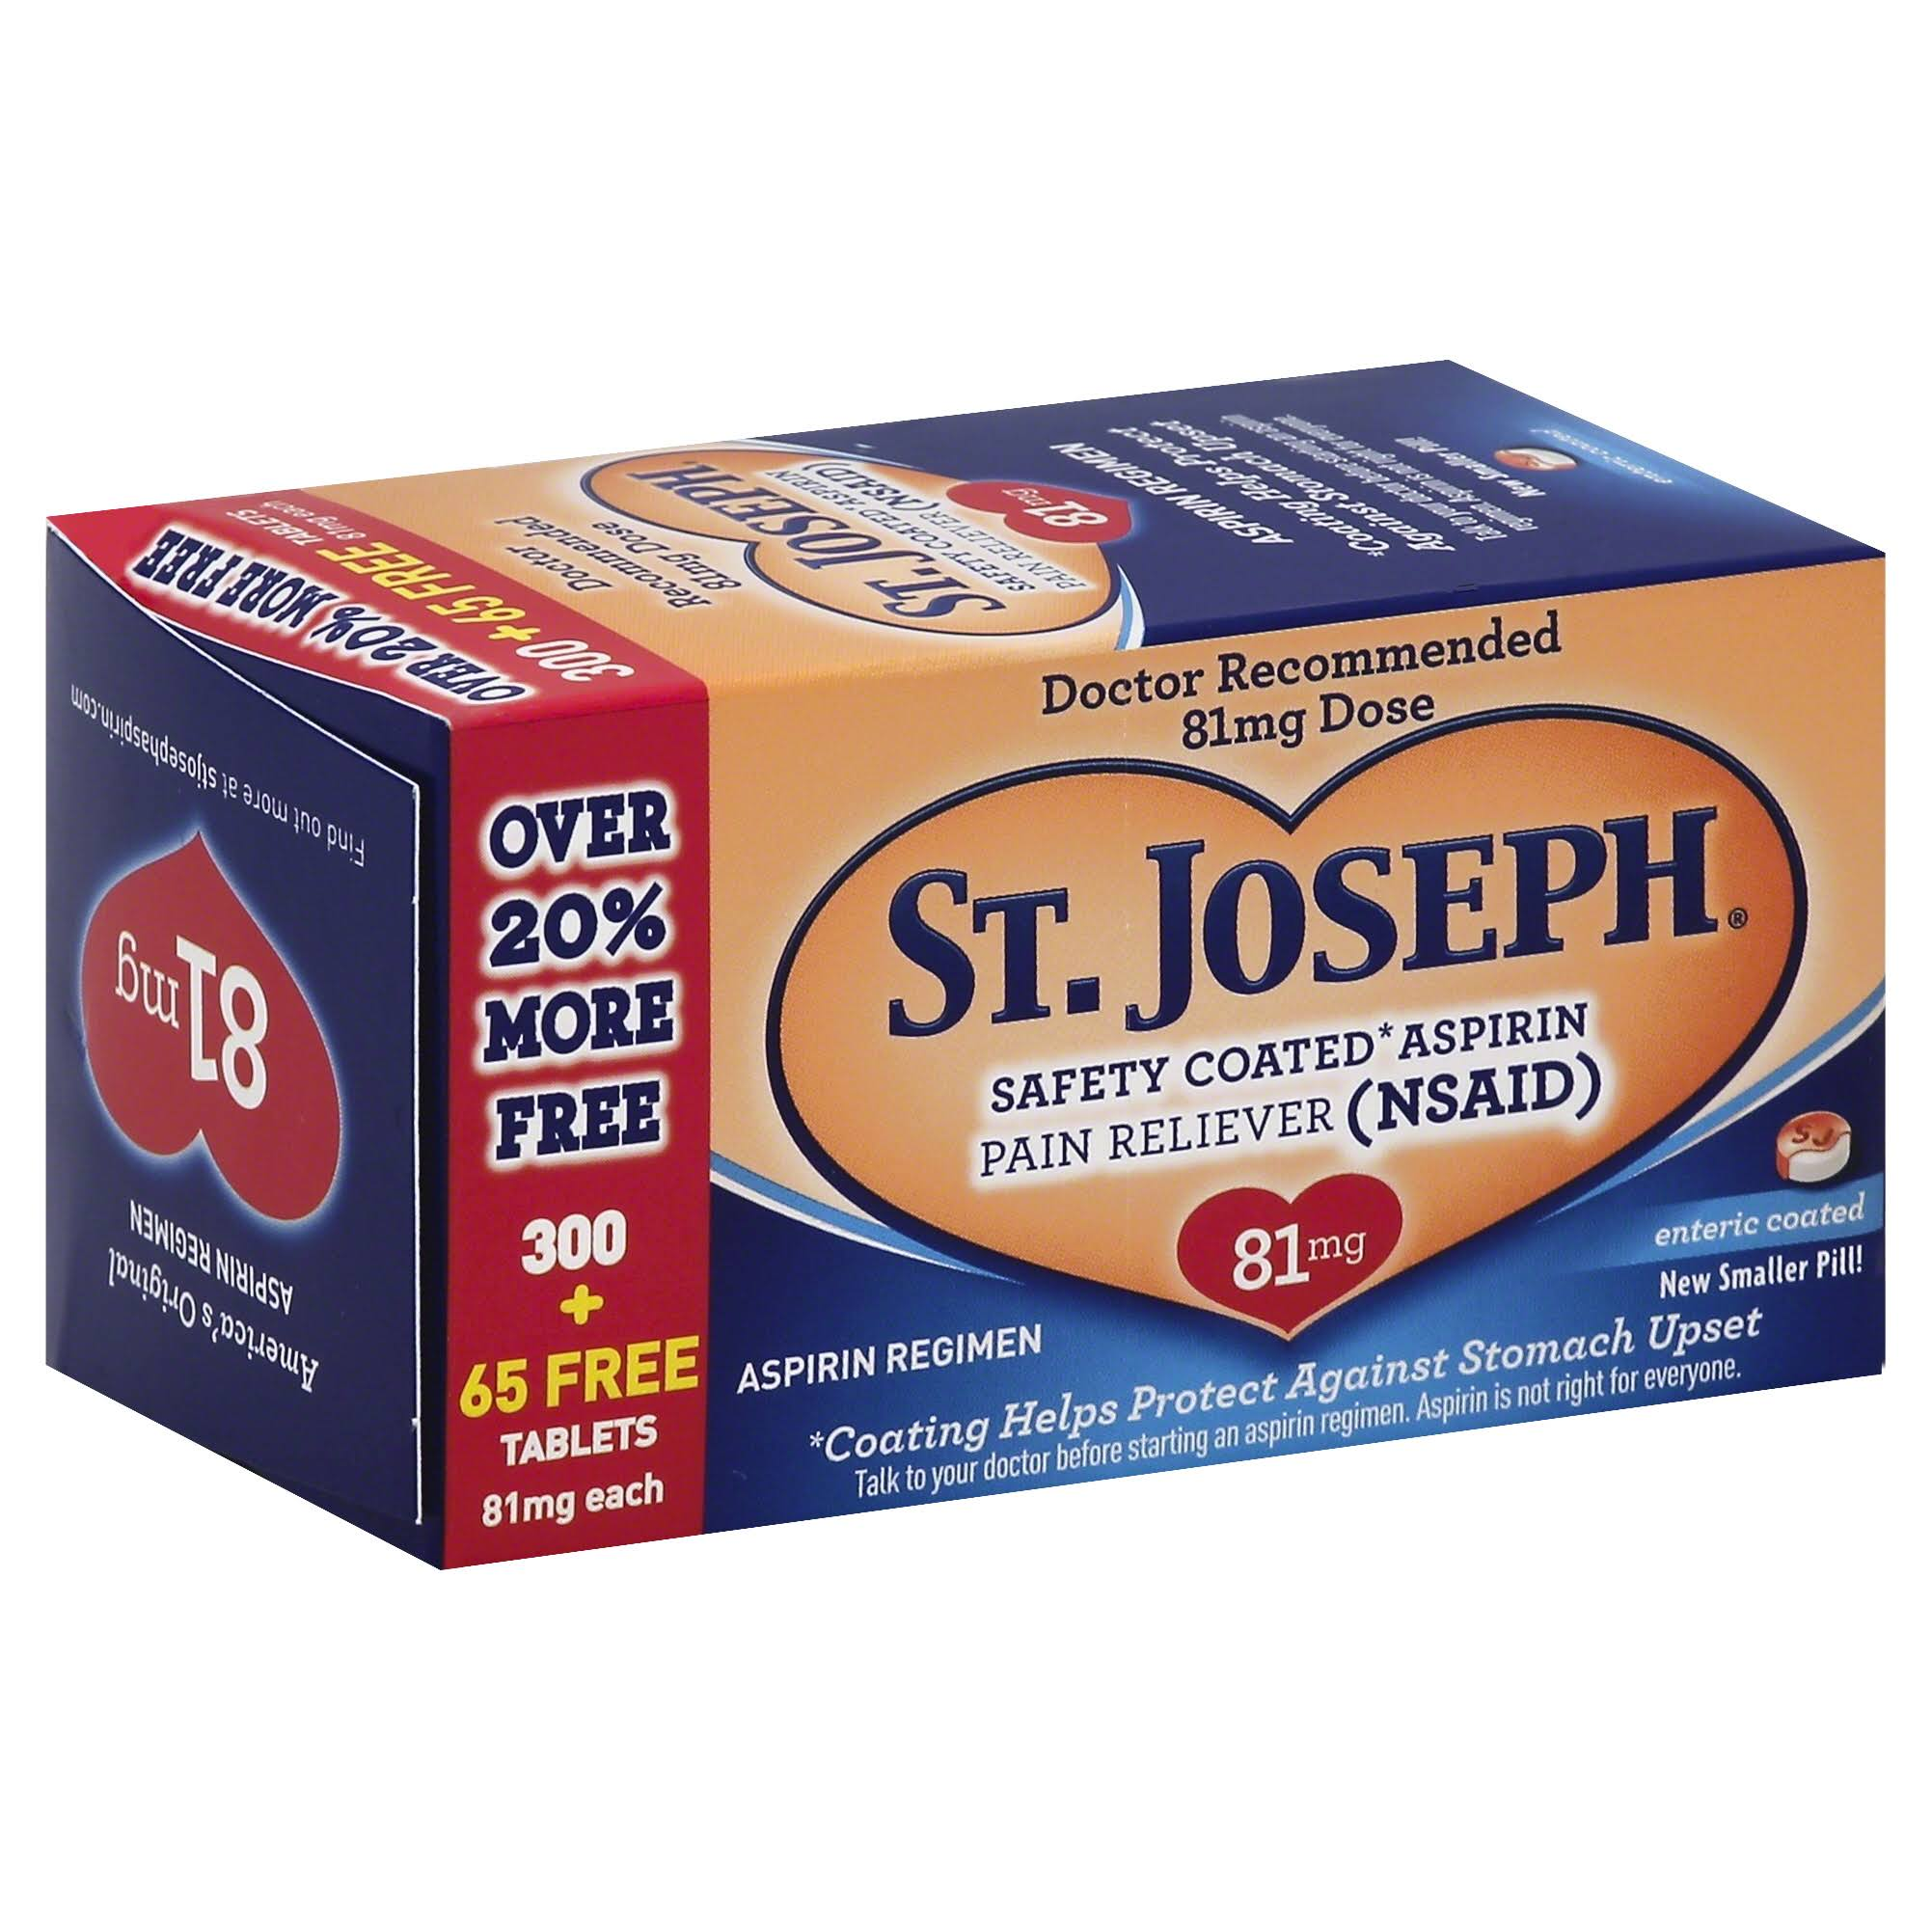 St. Joseph Safety Coated Aspirin Pain Reliever Tablets - 81mg, 365ct